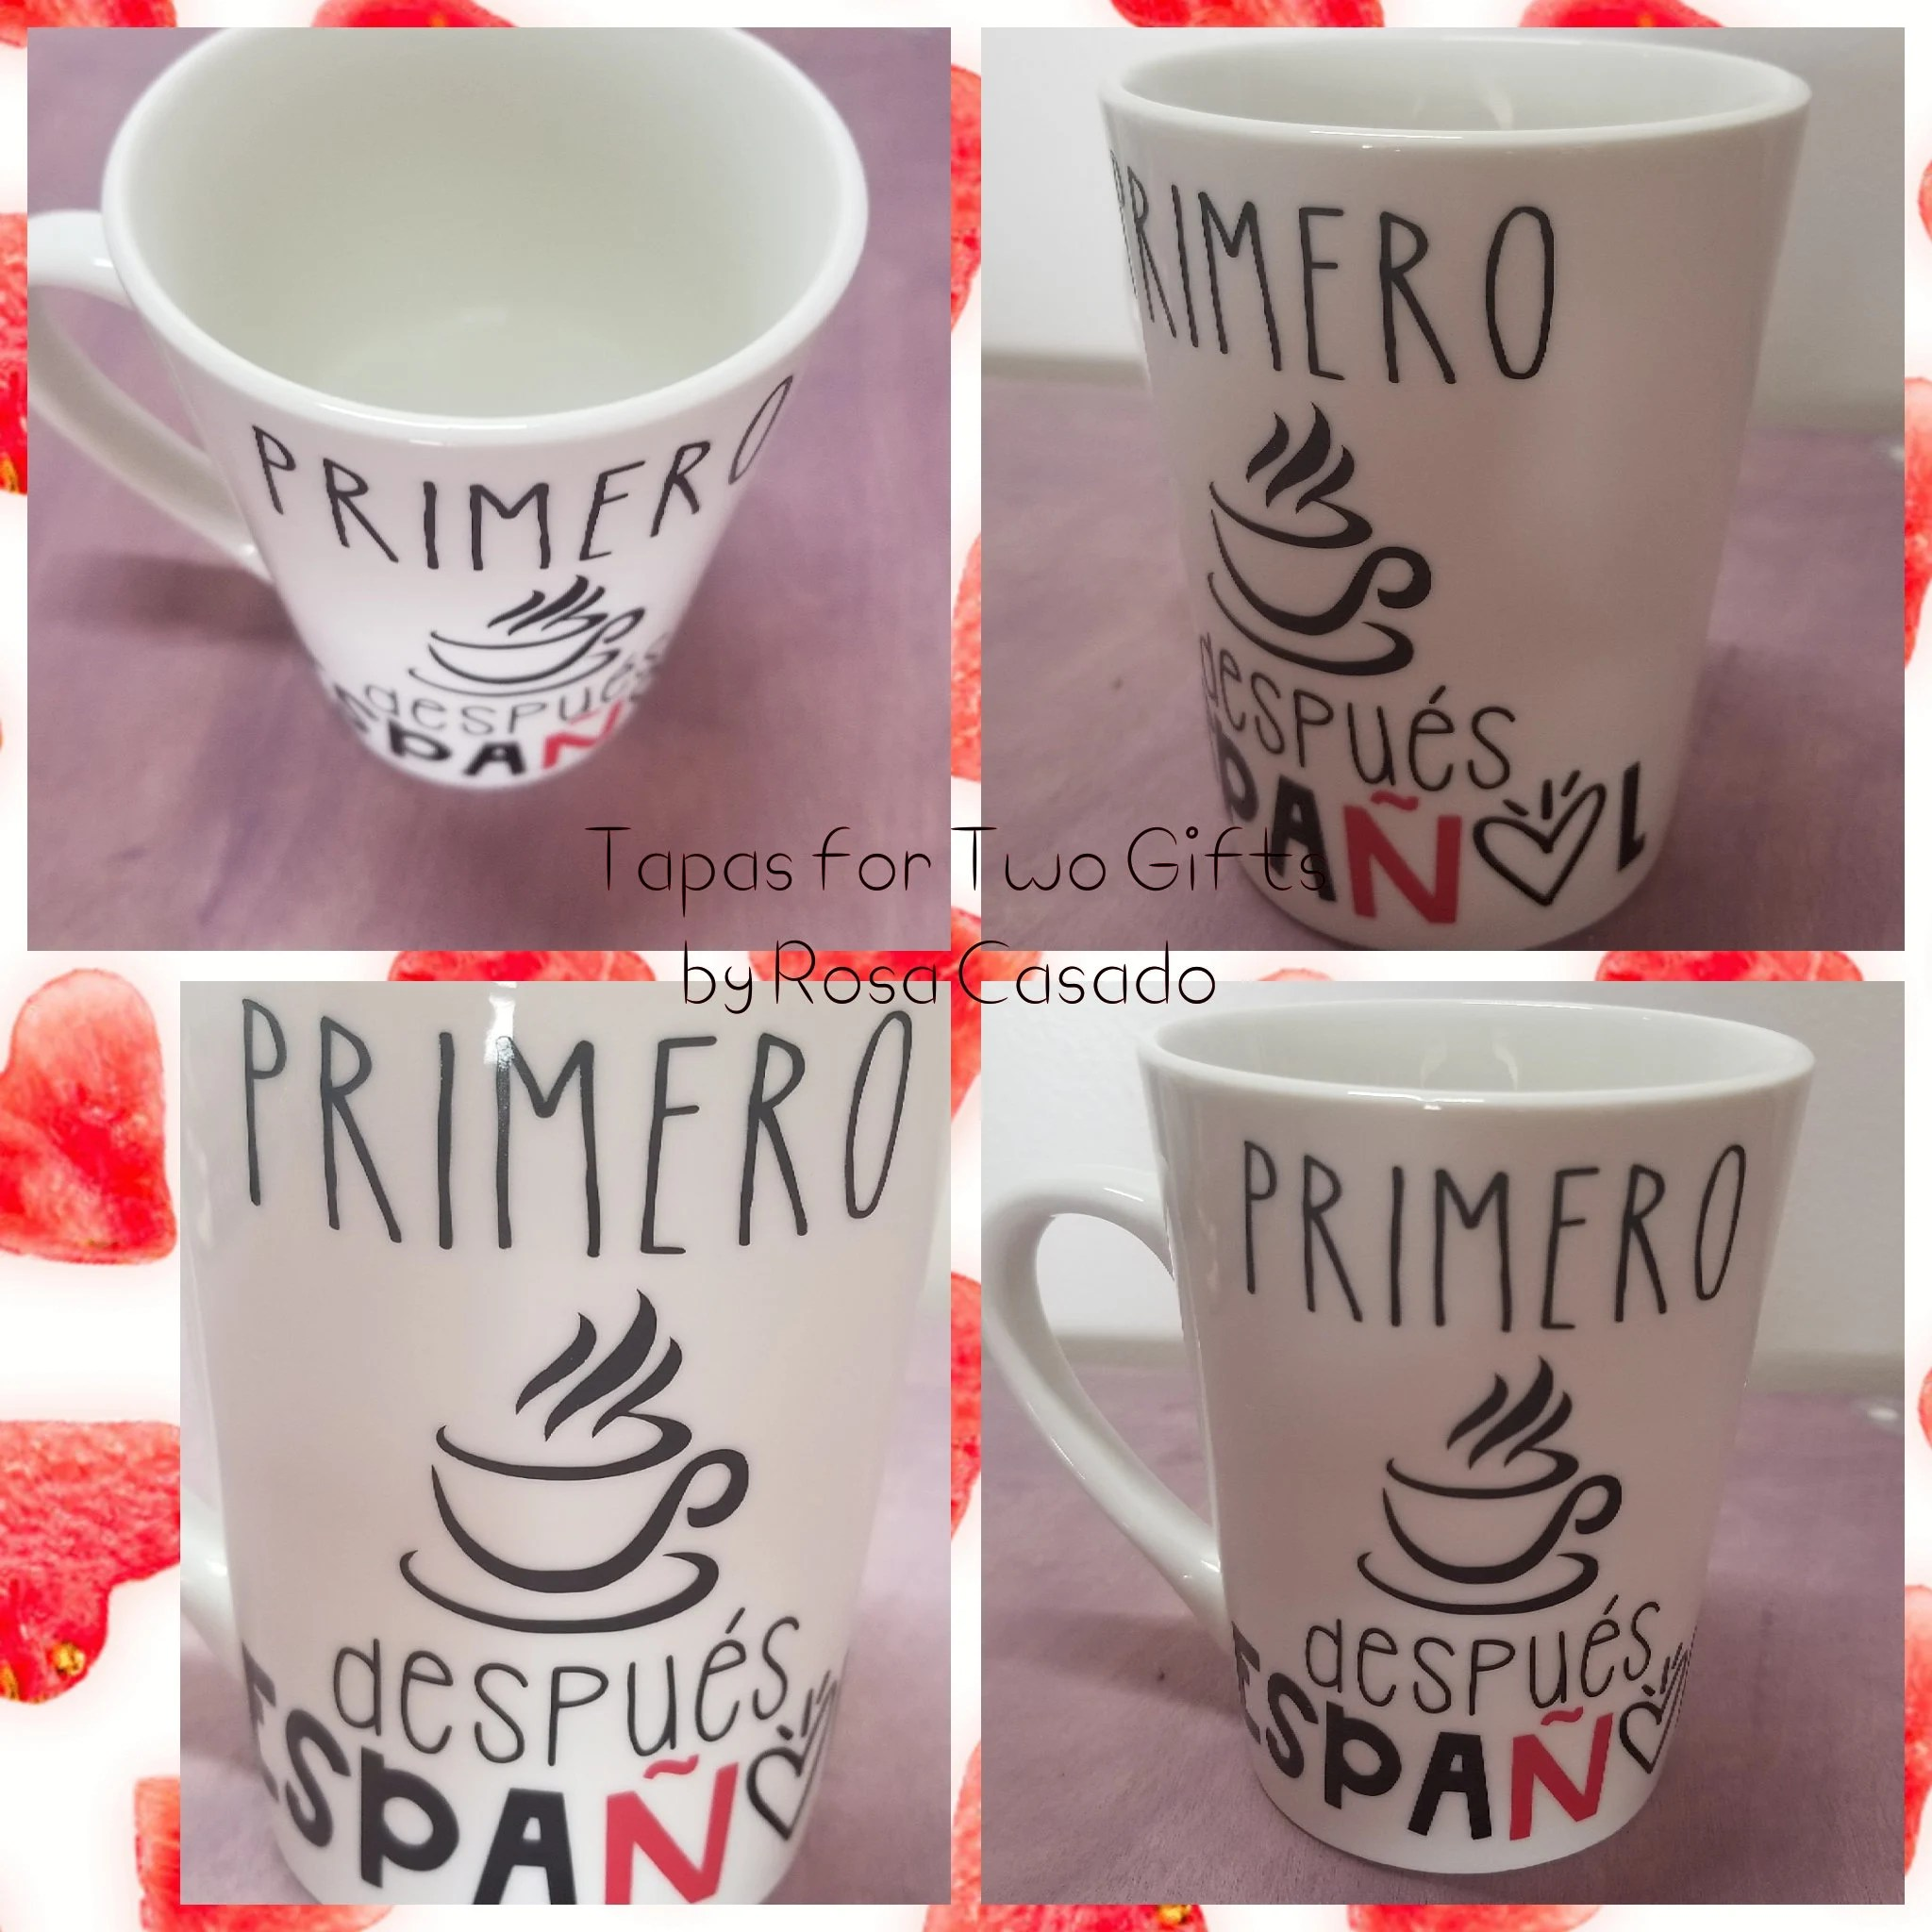 Mug A Cafe Spanish Teacher Coffee Mug Primero Cafe Despues Espanol Teacher Mug Spanish